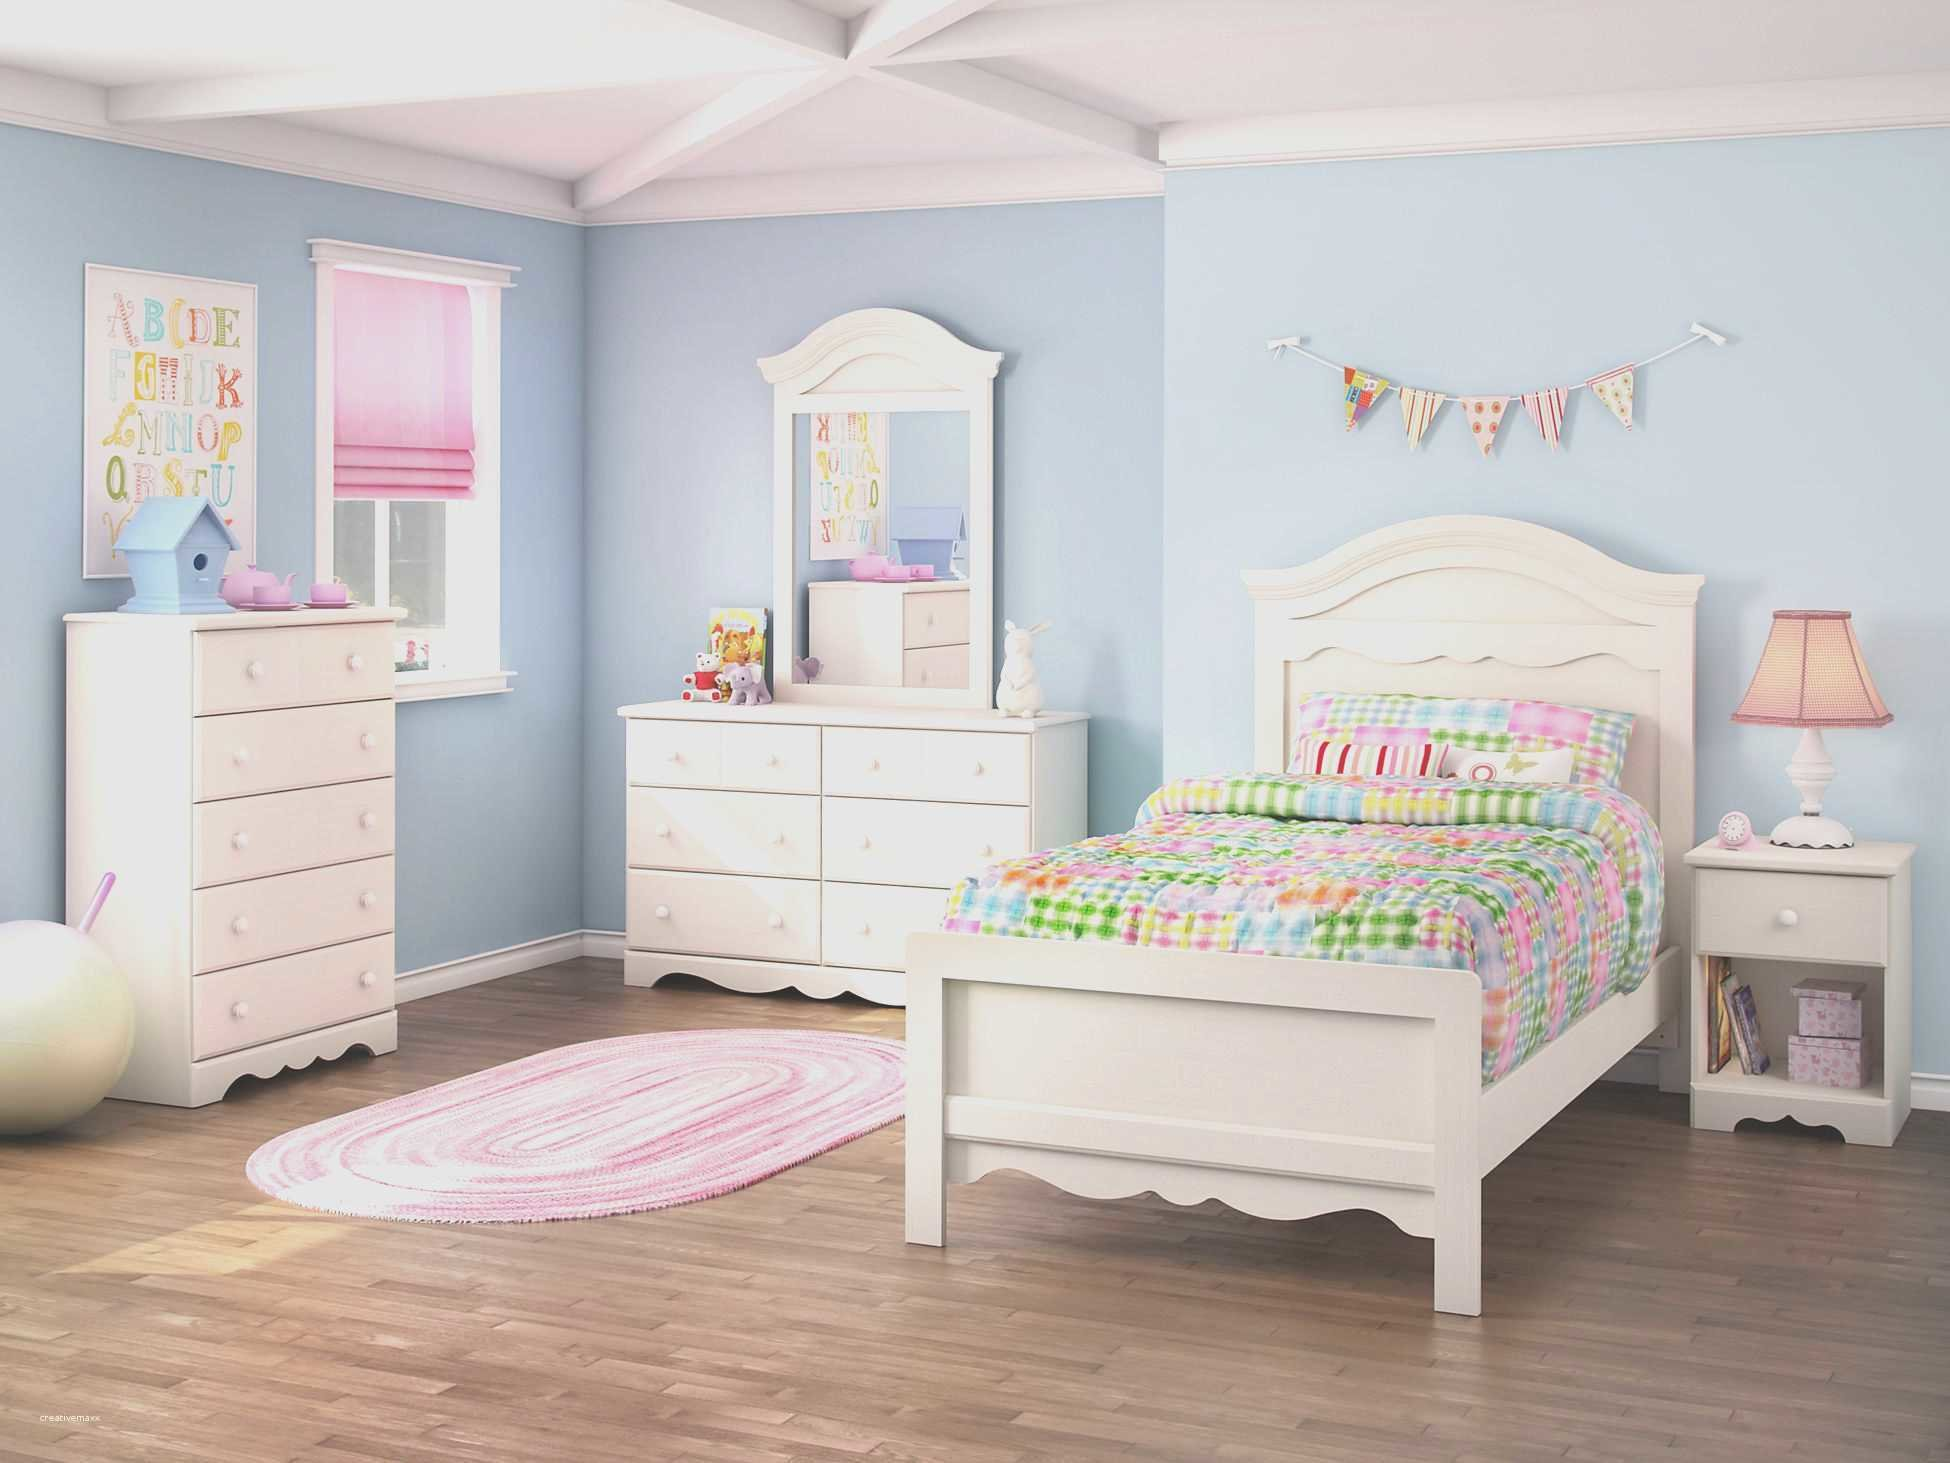 Best Bedroom Furniture Design For Girls Inspirational Bedroom Cute Beds For Girls Girls Bedroom Ideas With Pictures